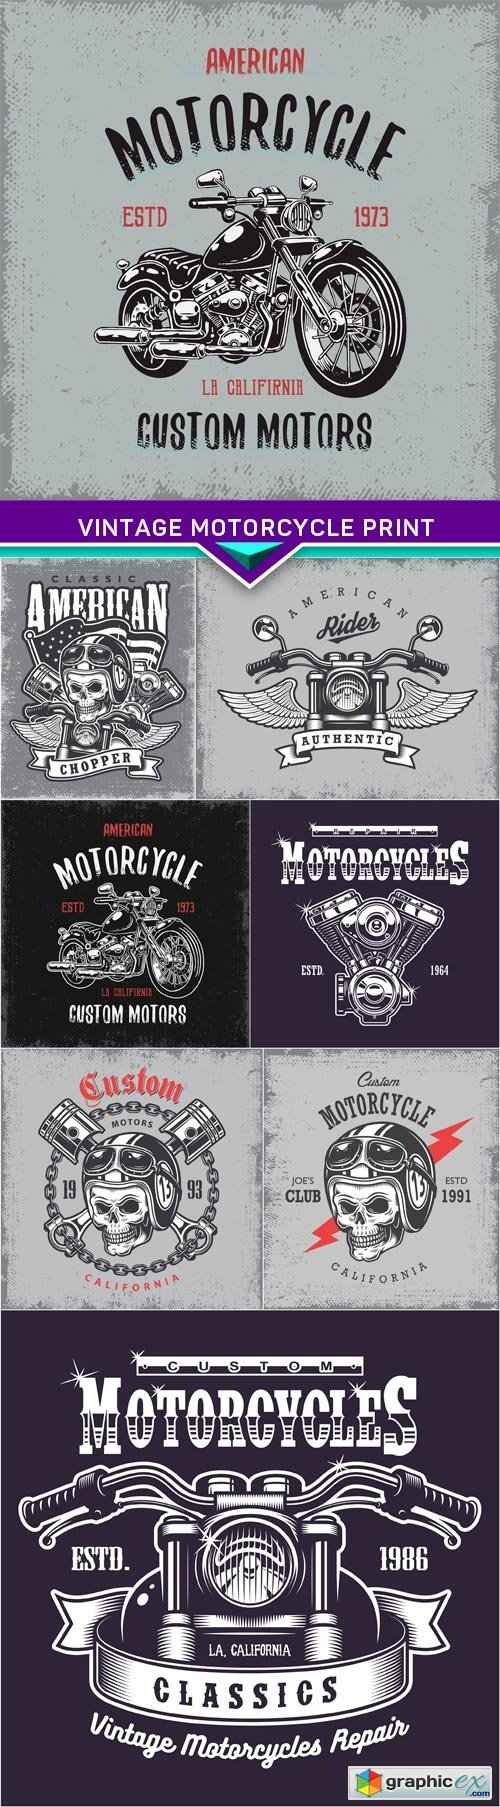 Vintage motorcycle print on grunge background 8X EPS